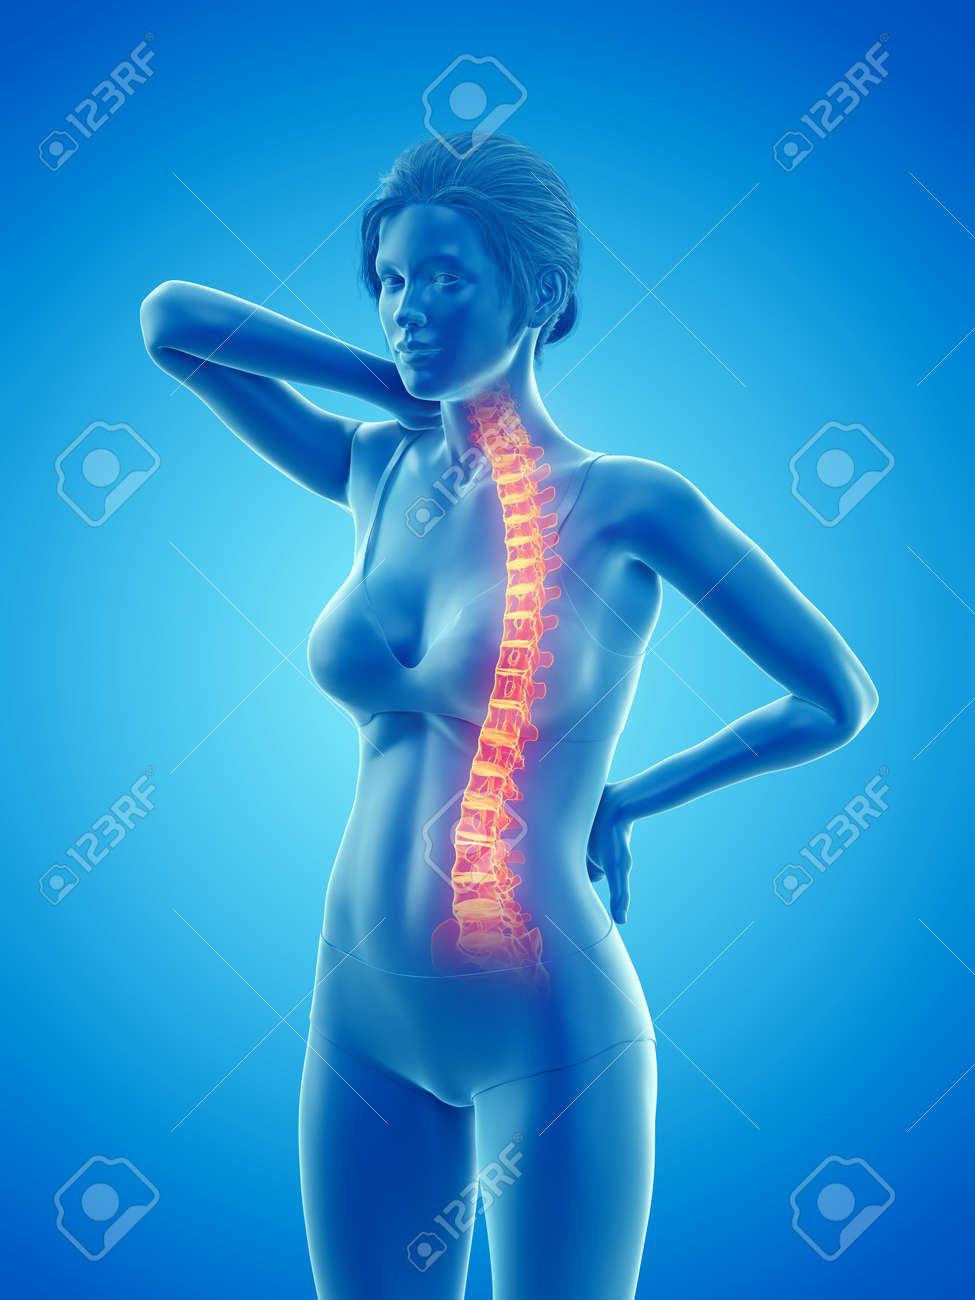 3d rendered medically accurate illustration of a woman having a painful back - 140958328